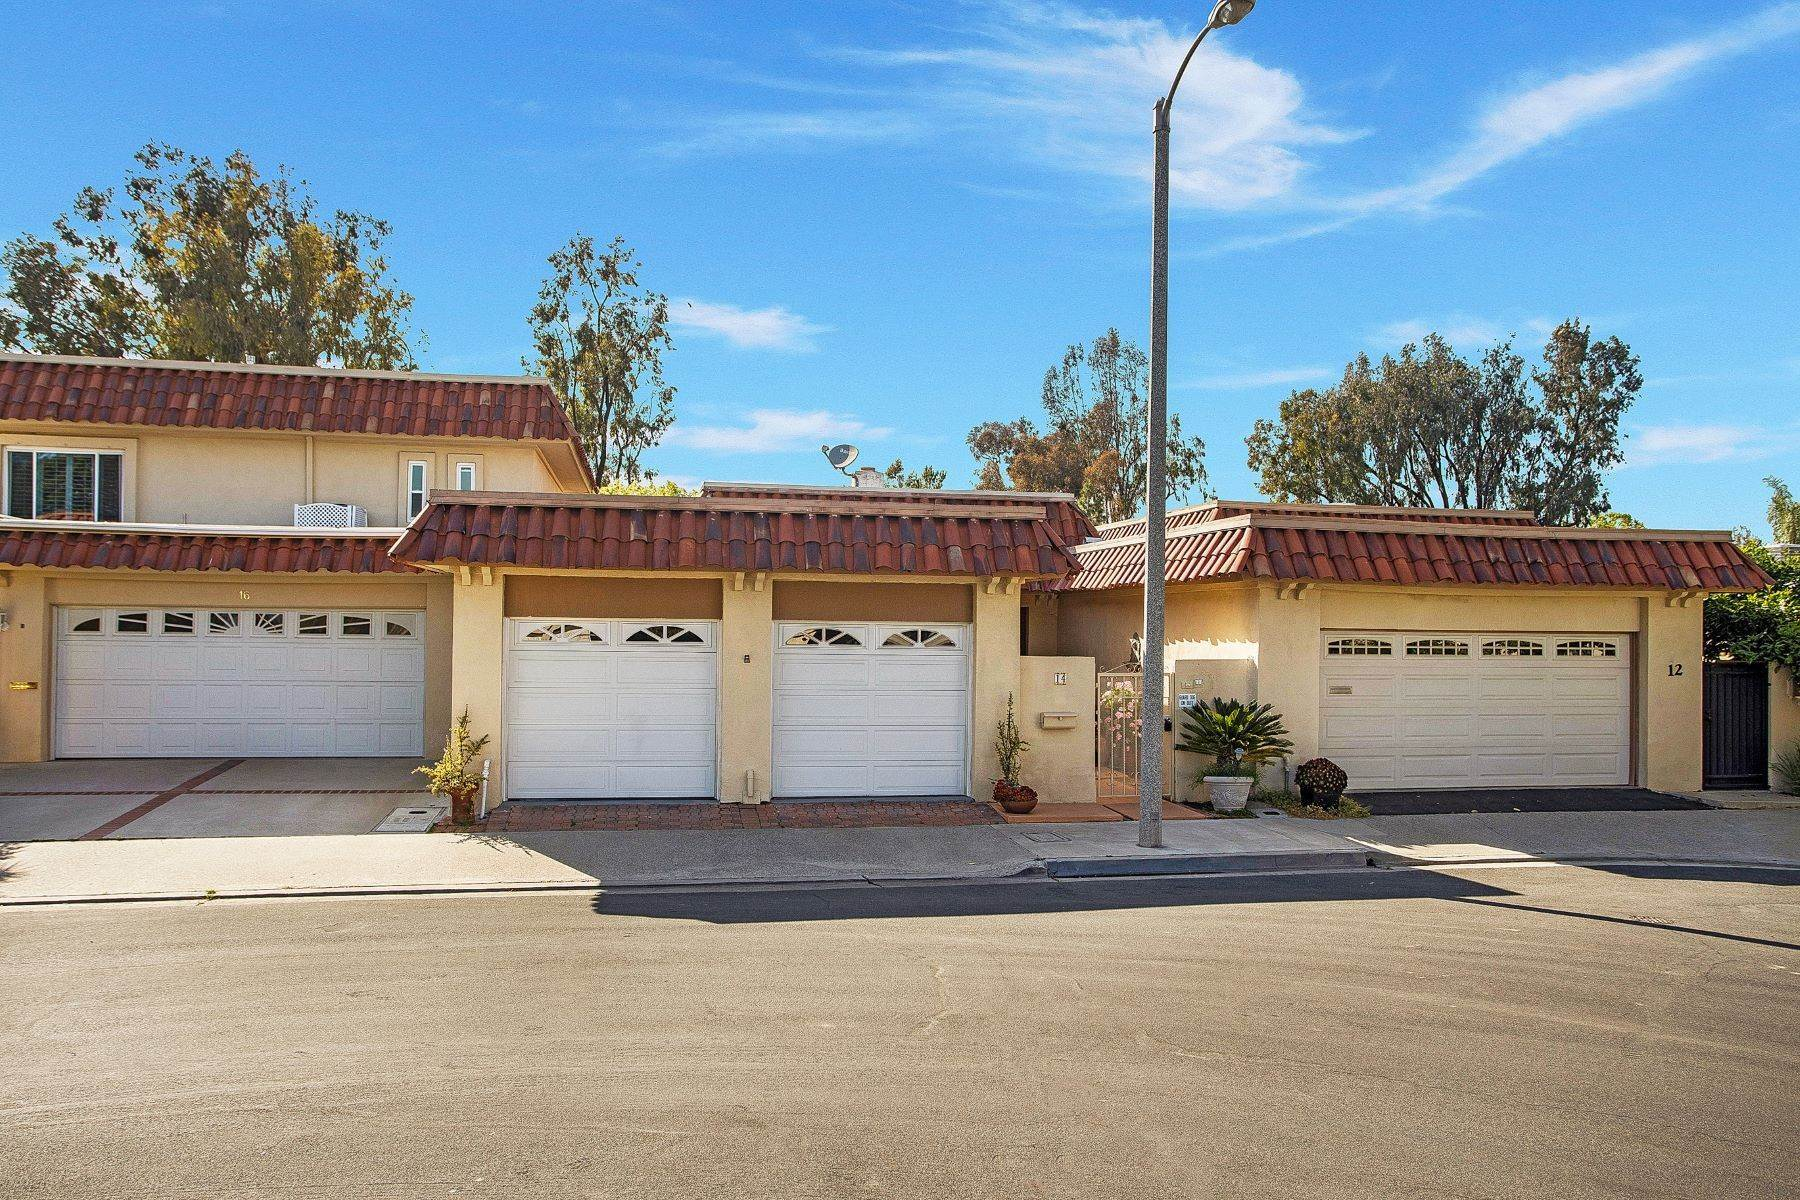 Single Family Homes for Sale at 14 Palmento Way, Irvine, CA 92612 14 Palmento Way Irvine, California 92612 United States